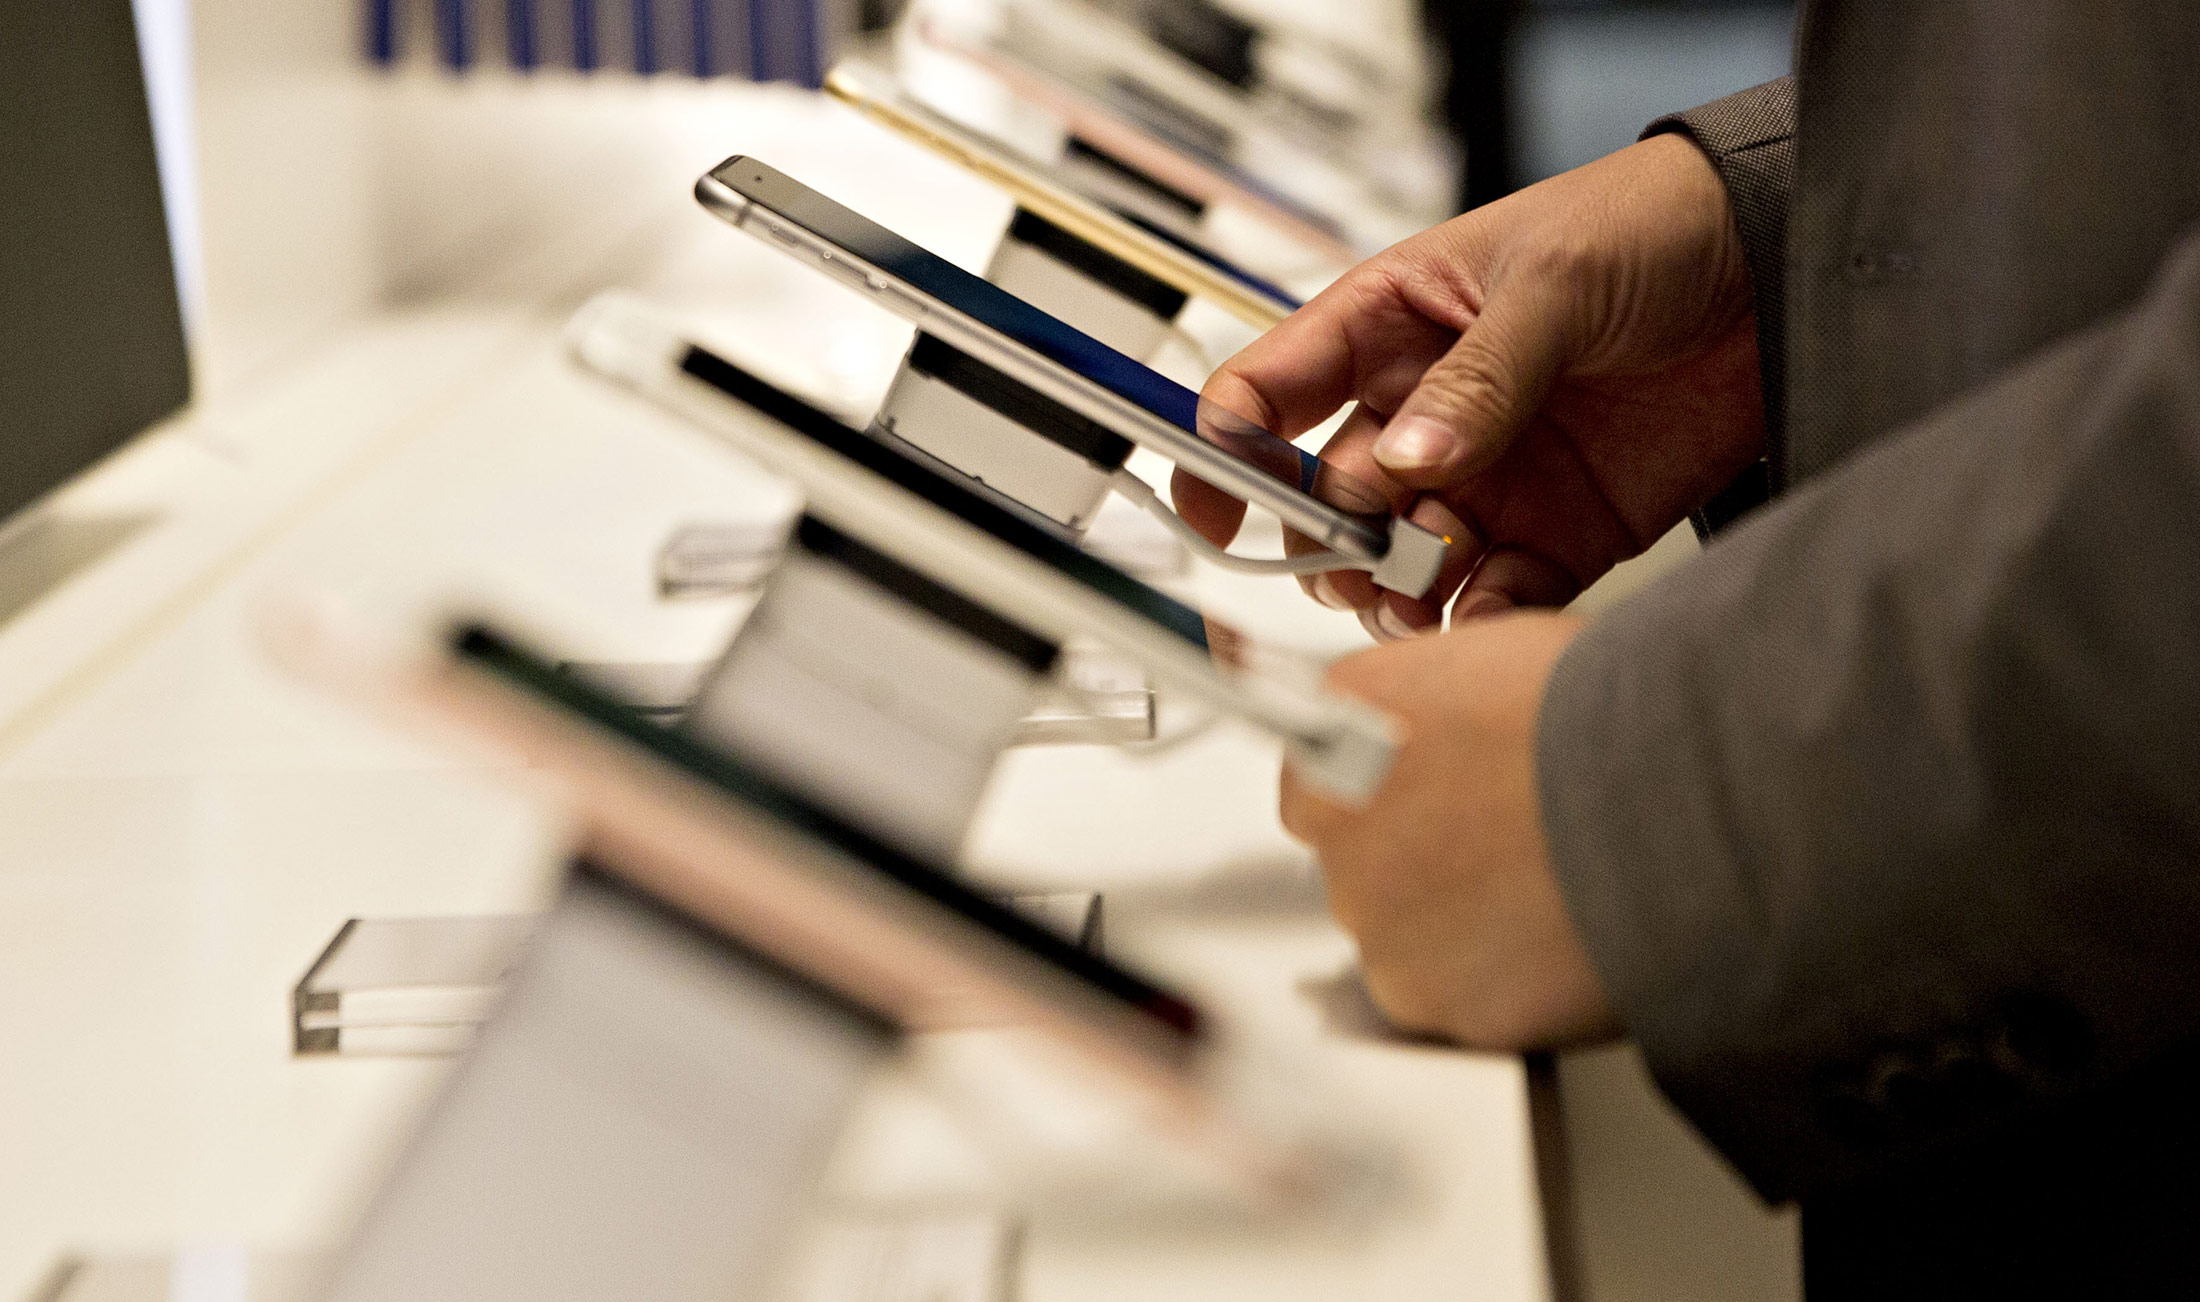 Apple Attracts New iPhone Fans as Existing Owners Await Upgrade